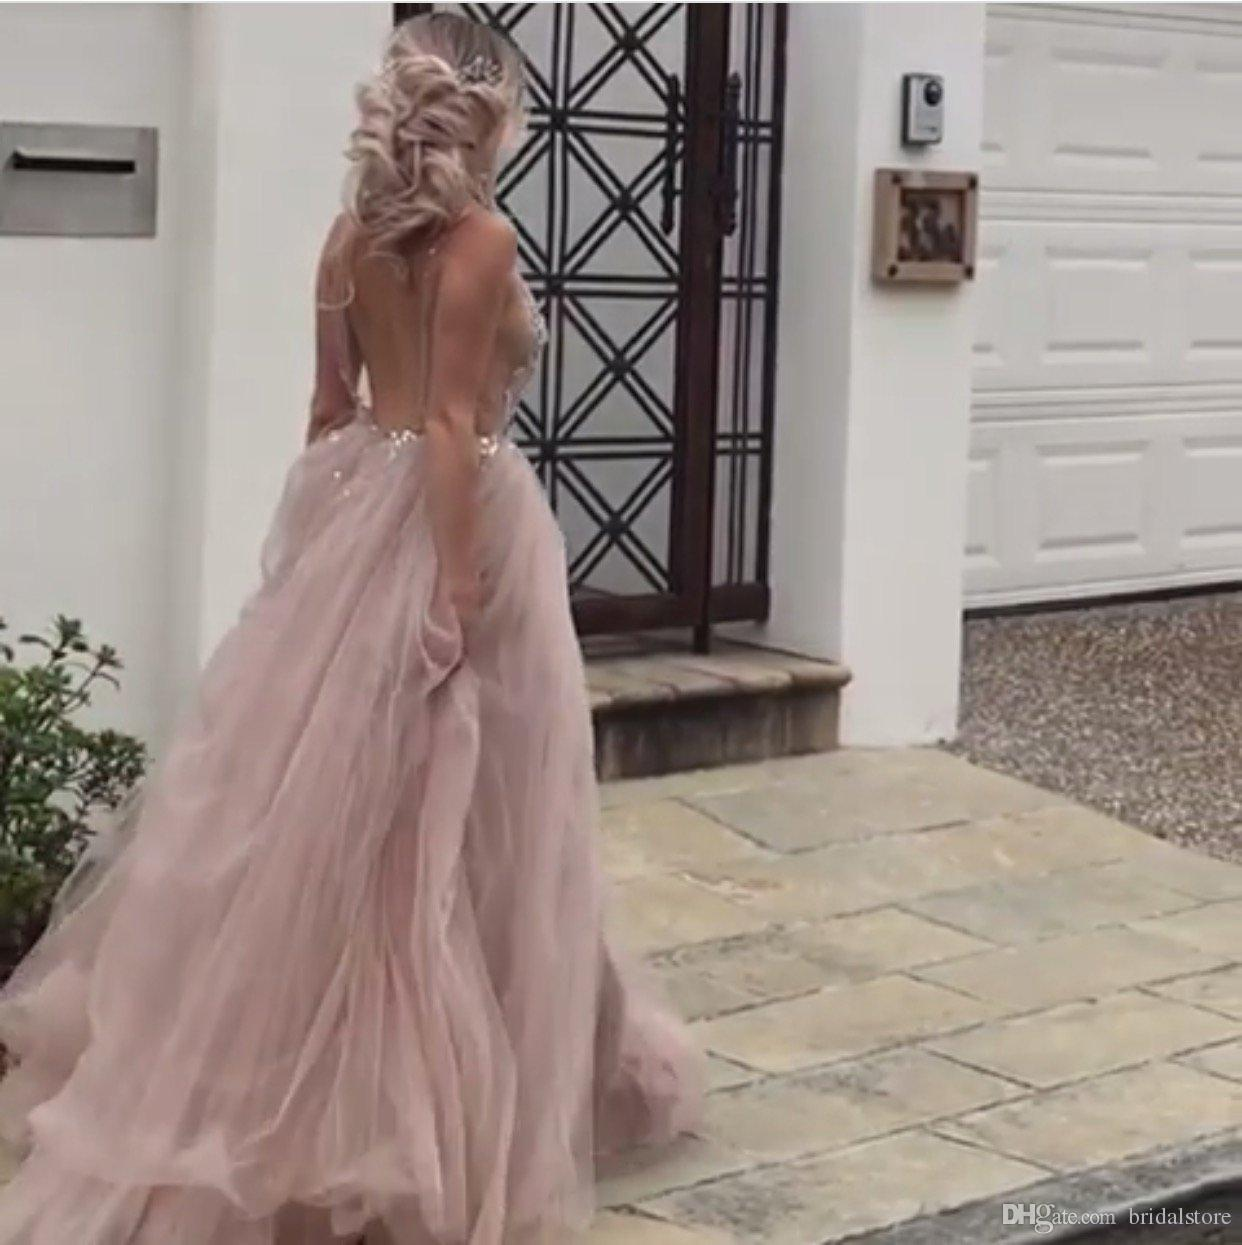 Sexy See Through Prom Dresses With High Slits Top Rhinestone Crystal Long Elegant Evening Formal Dresses 2018 Tulle Special occasion dresses